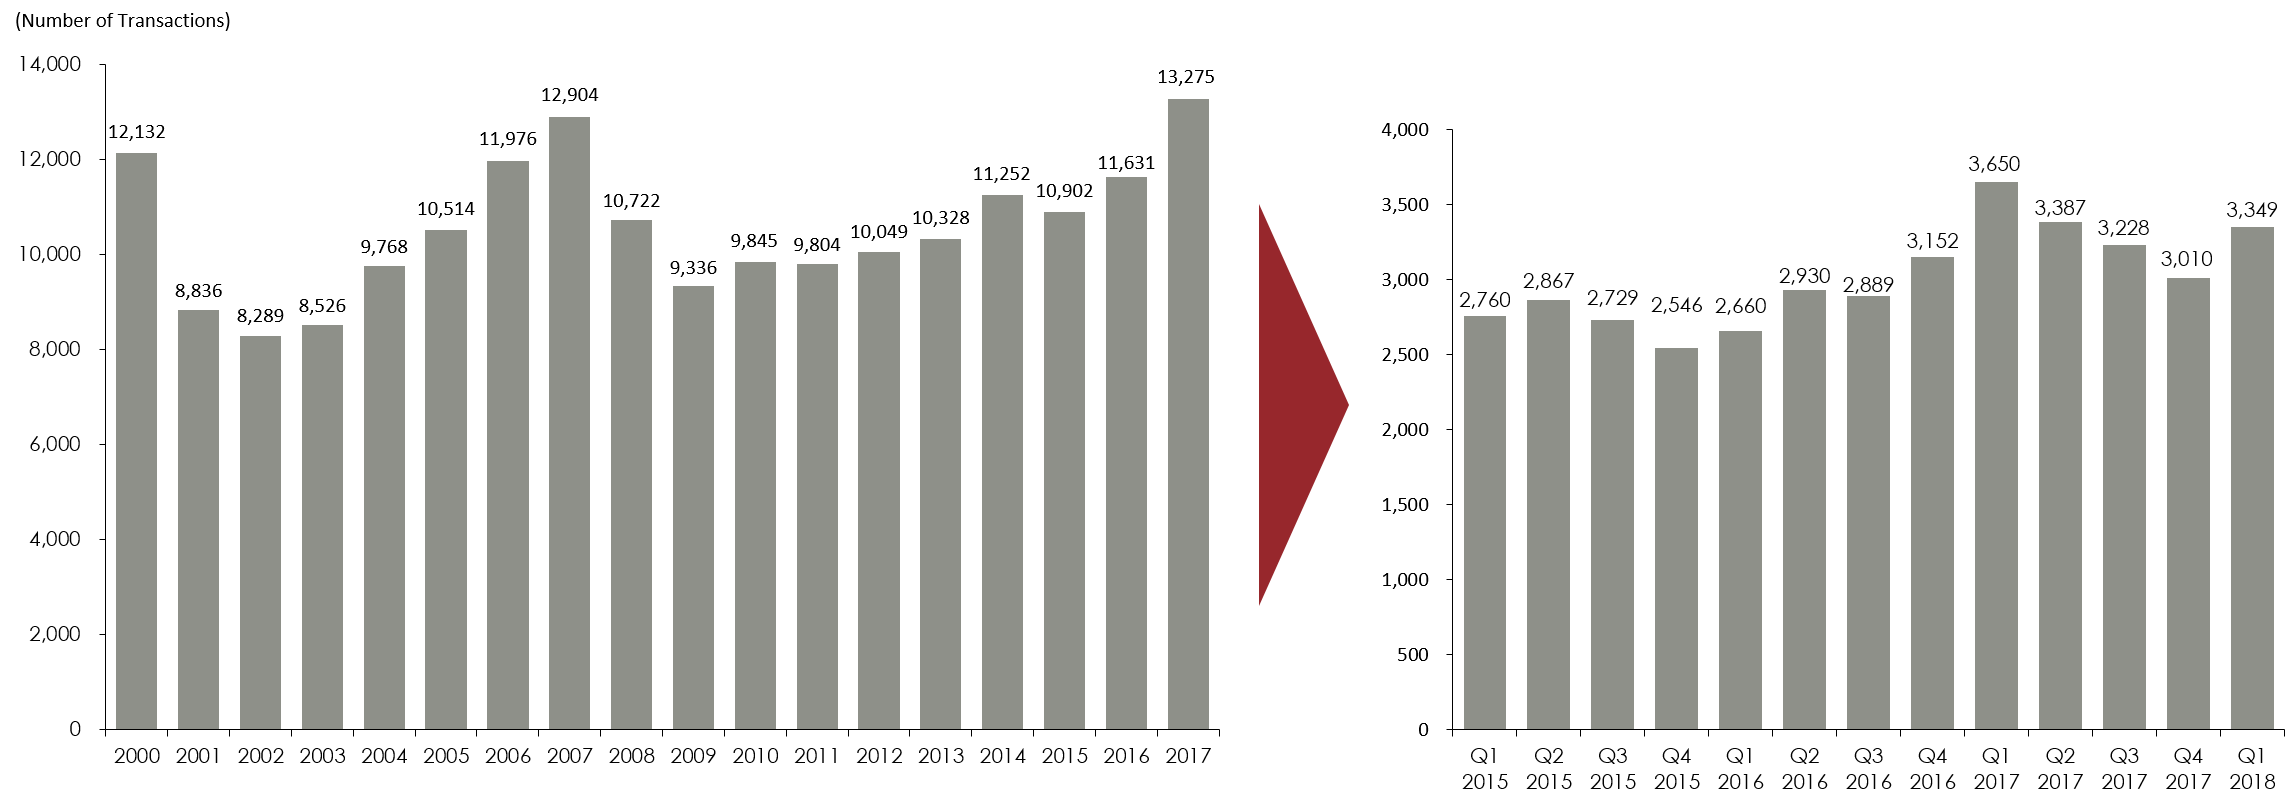 graph_1_-_north_american_ma_volume_1.png